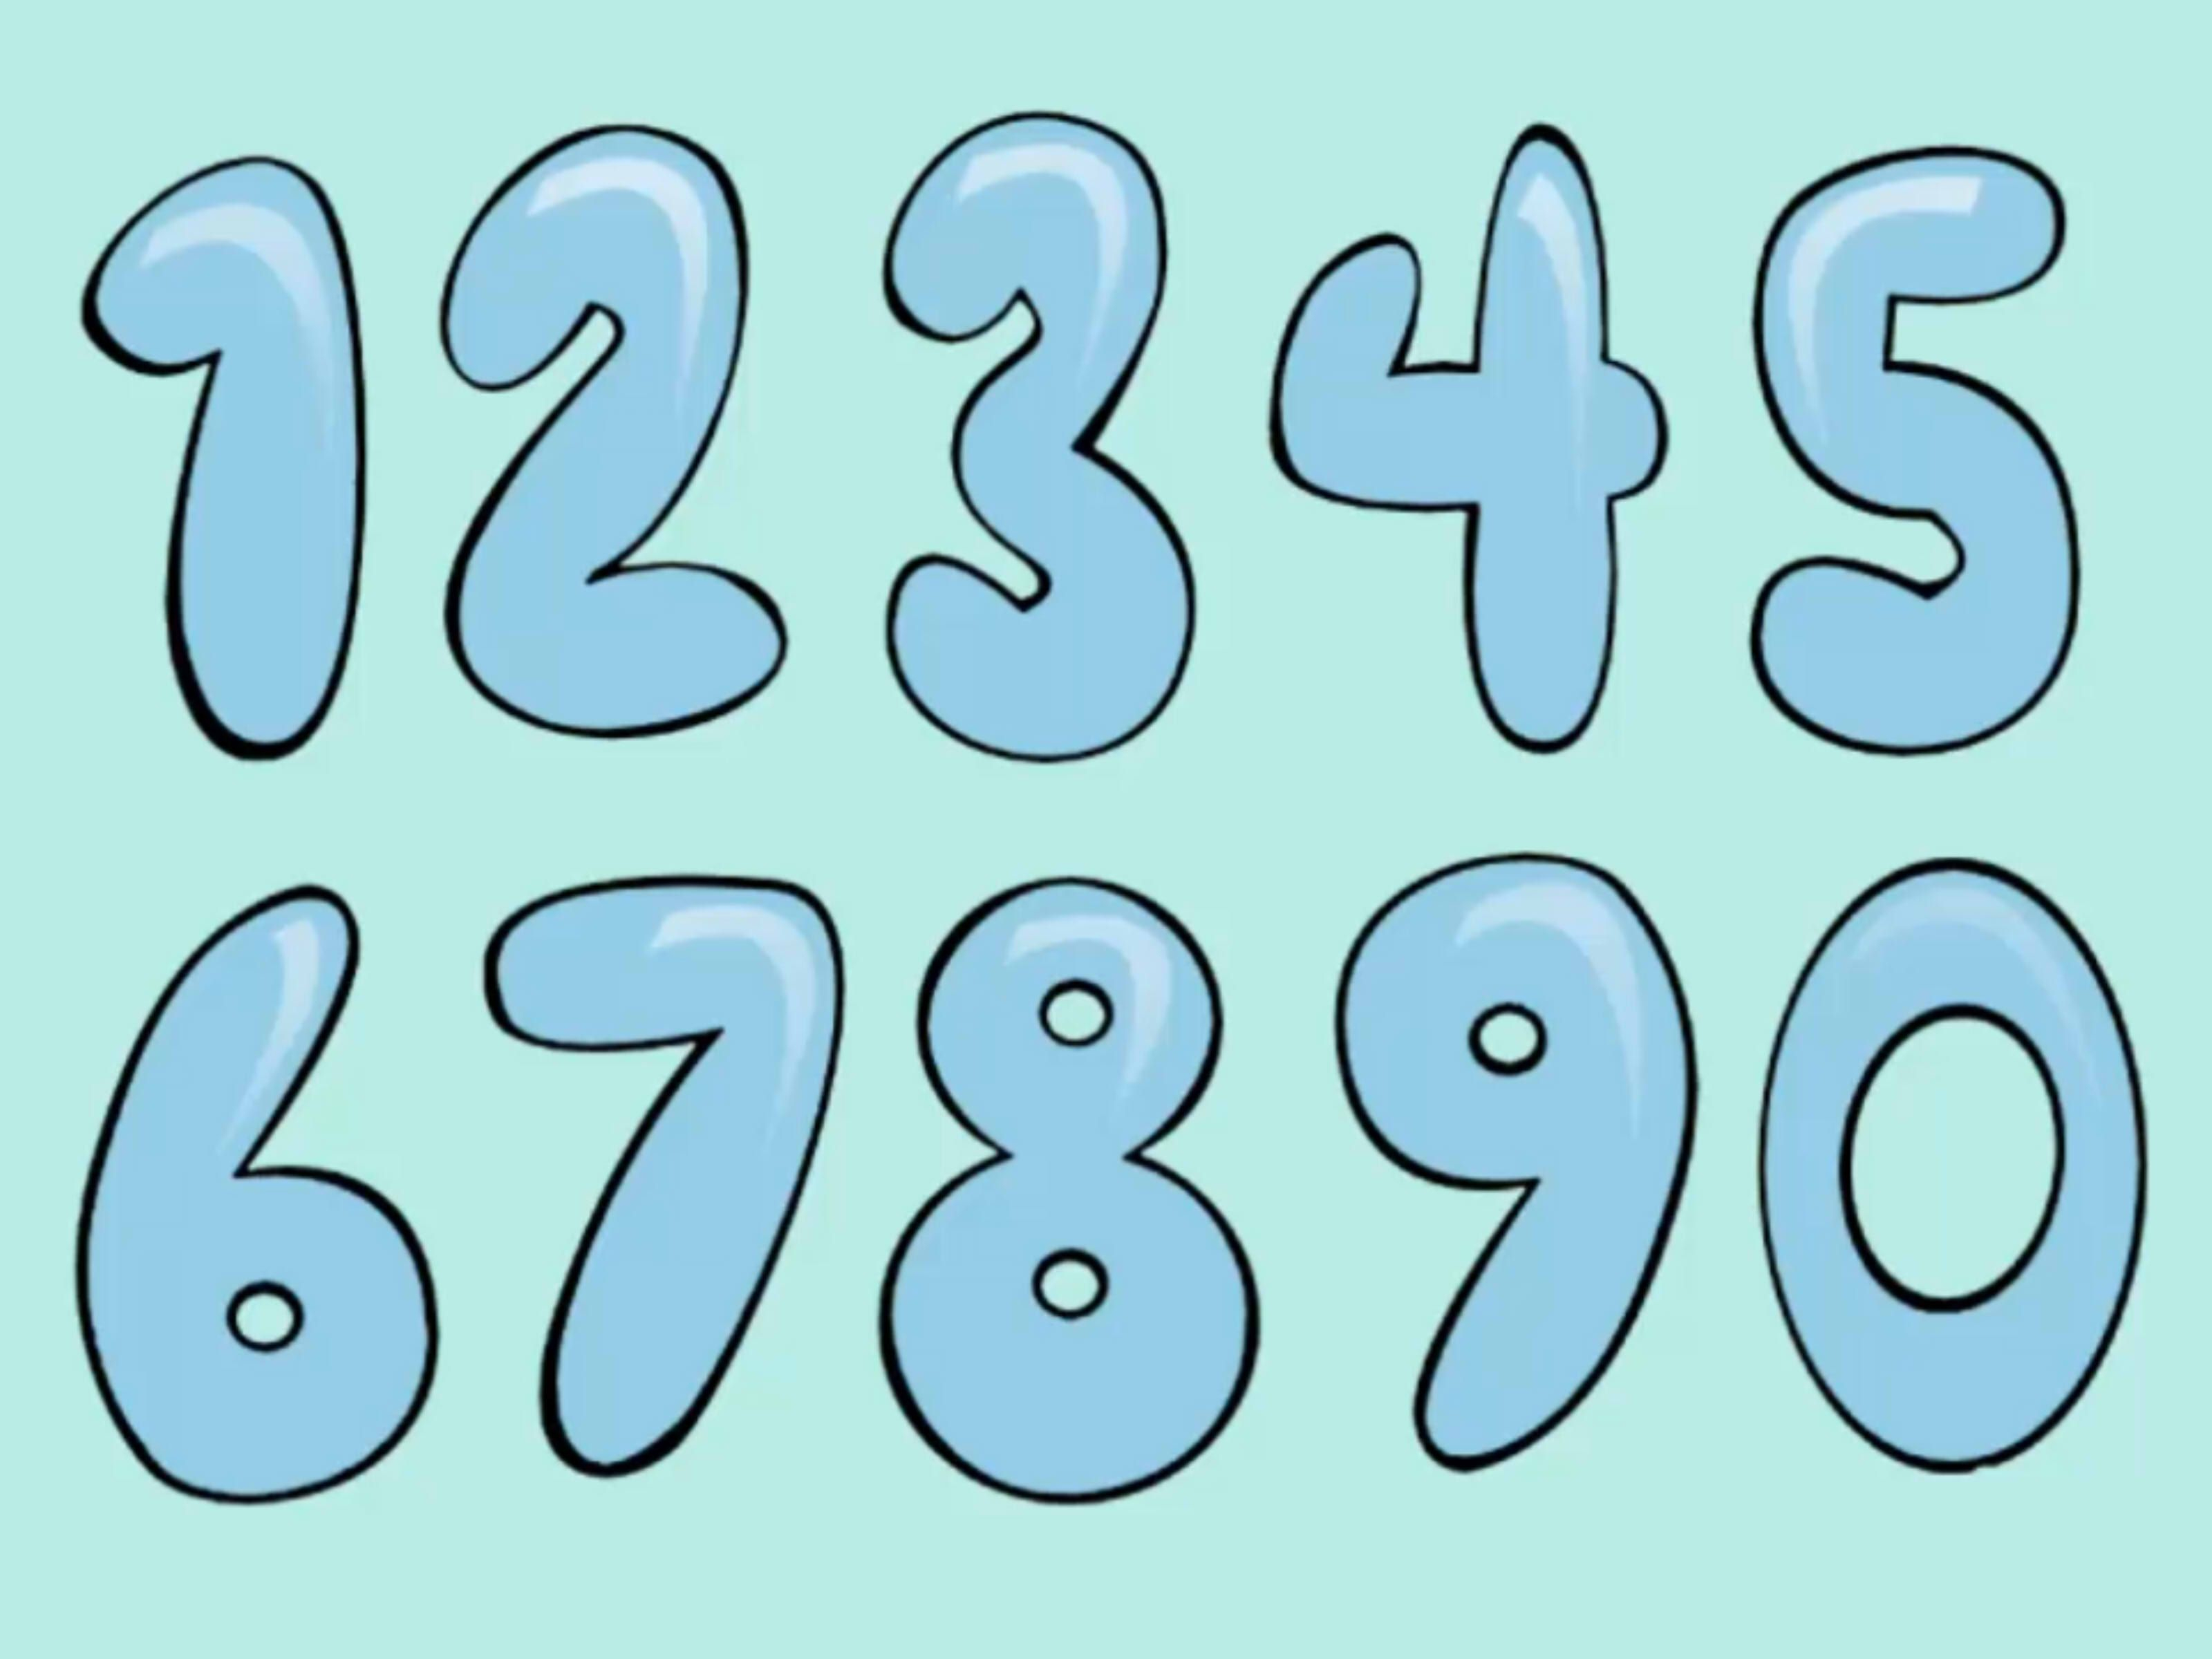 How To Draw Bubble Numbers | Stuff | Bubble Numbers, Bubble Drawing - Free Printable Bubble Numbers